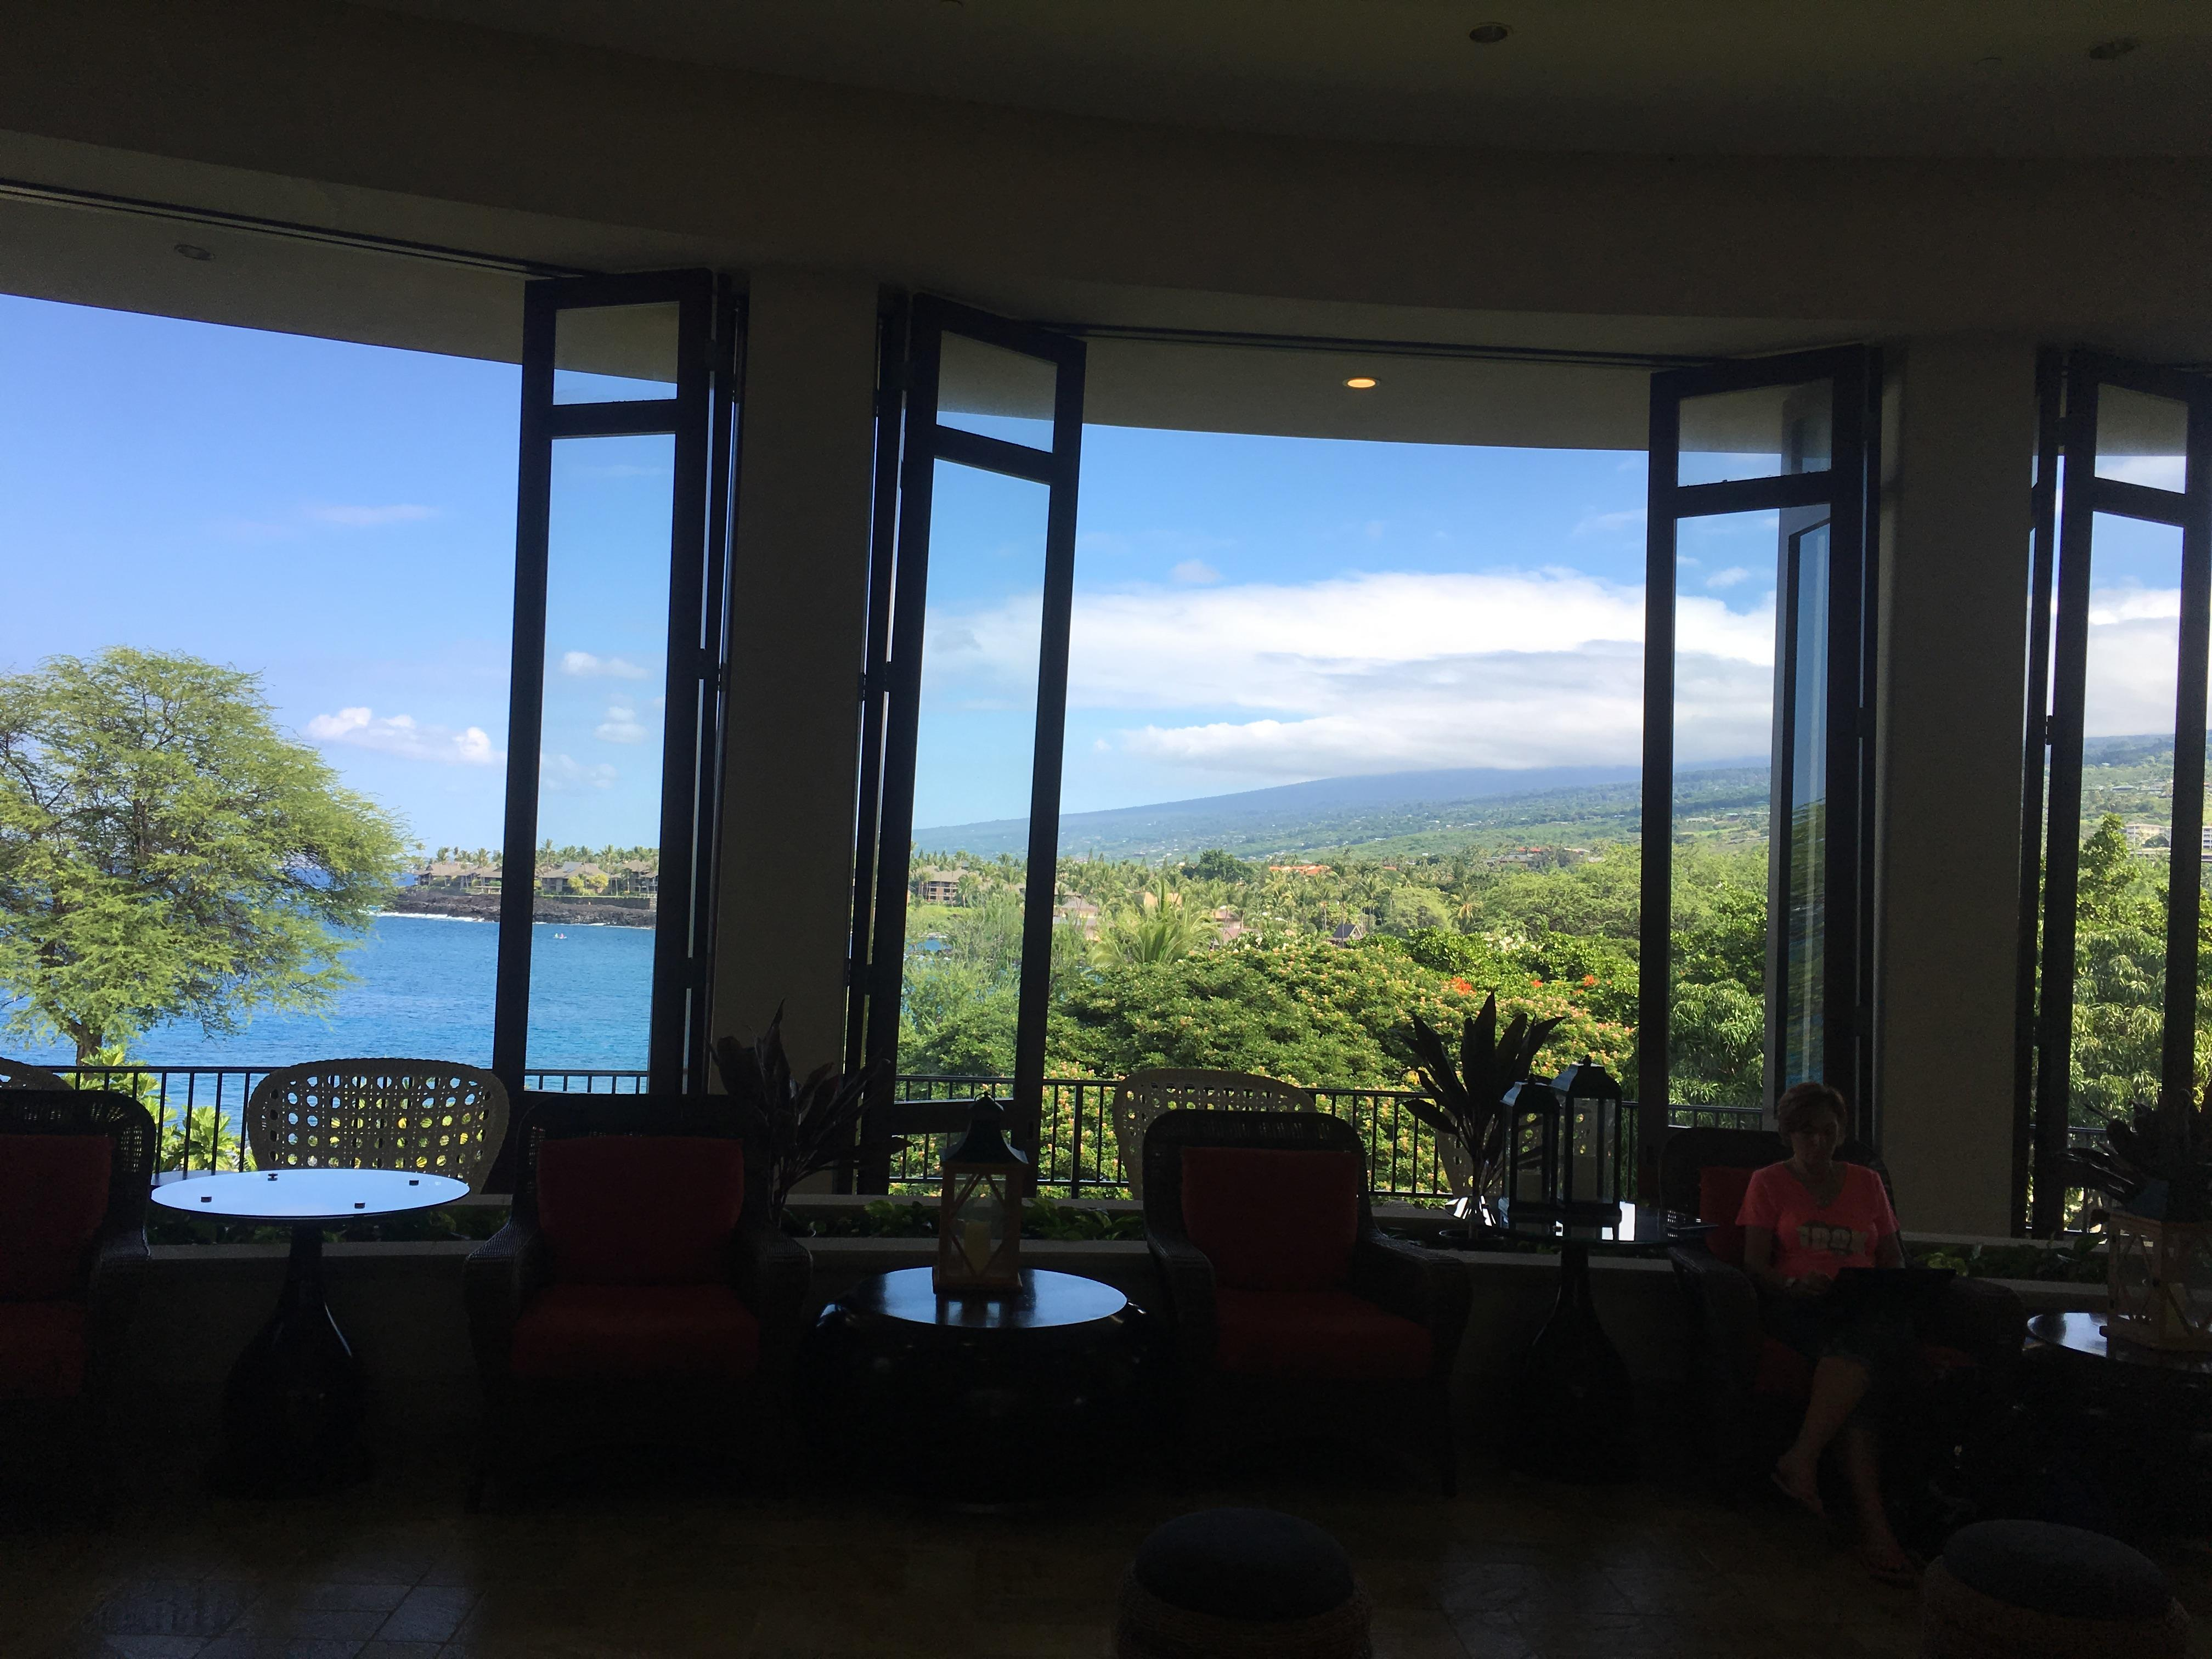 View from the front lobby